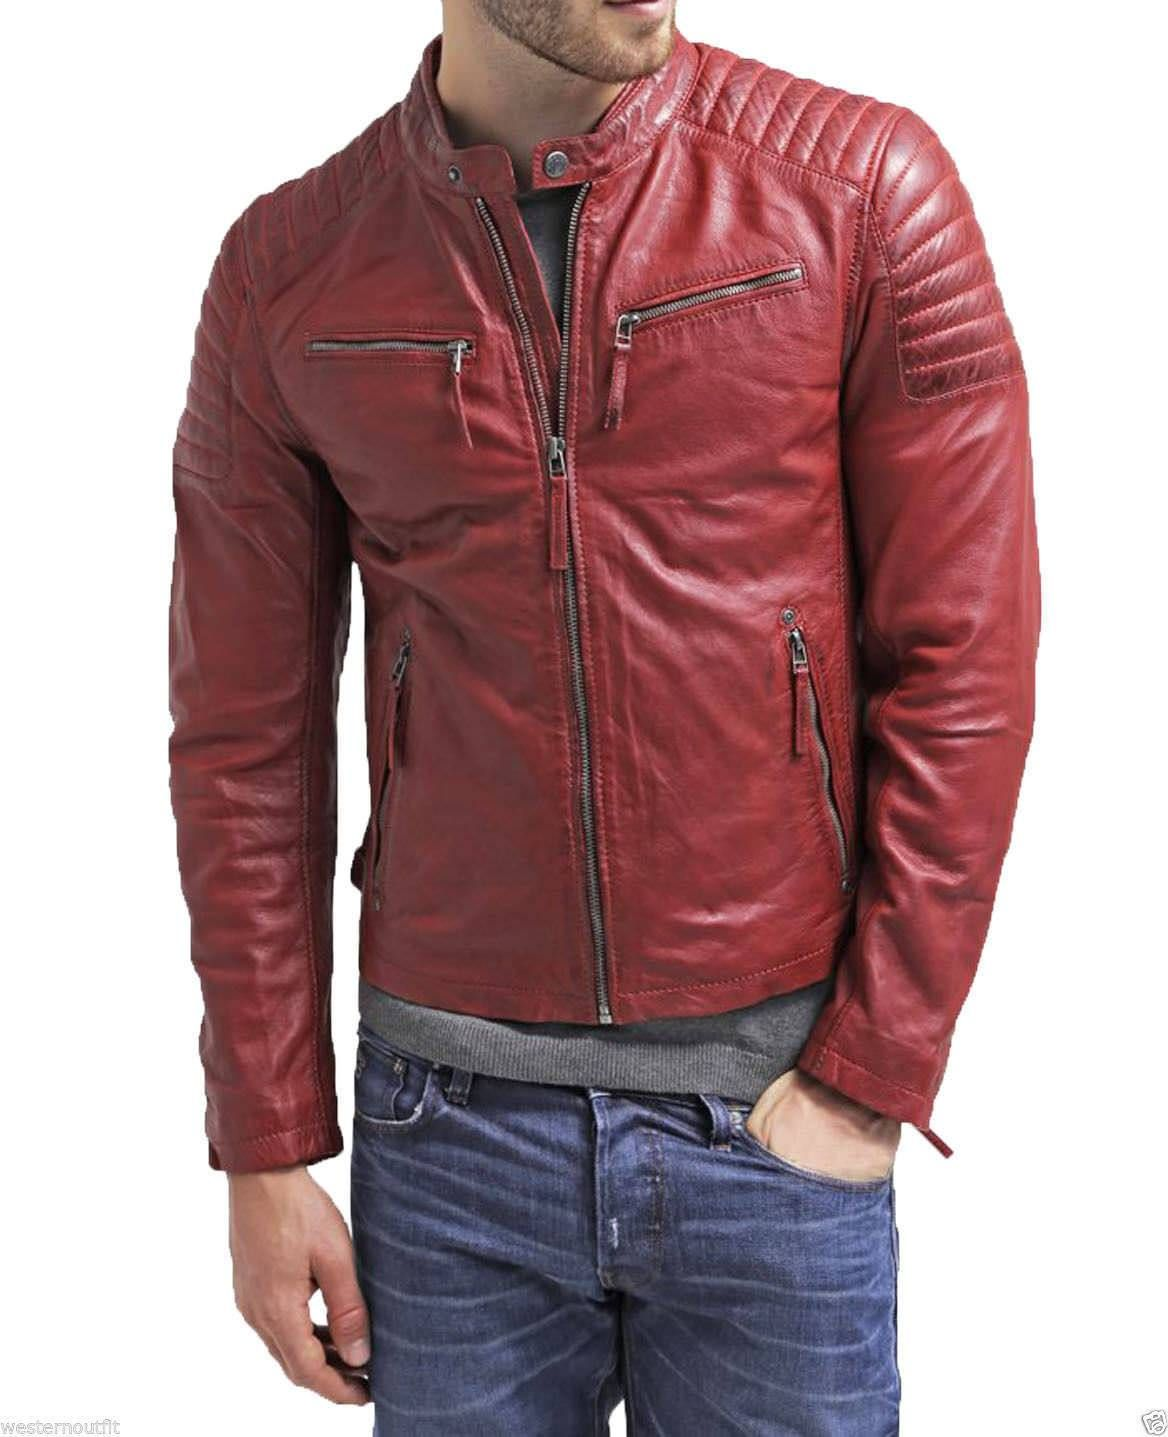 Men S Red Biker Fashion Quilted Motorcycle Cafe Racer Leather Jacket Leather Jacket Men Style Leather Jacket Lambskin Leather Jacket [ 1437 x 1168 Pixel ]